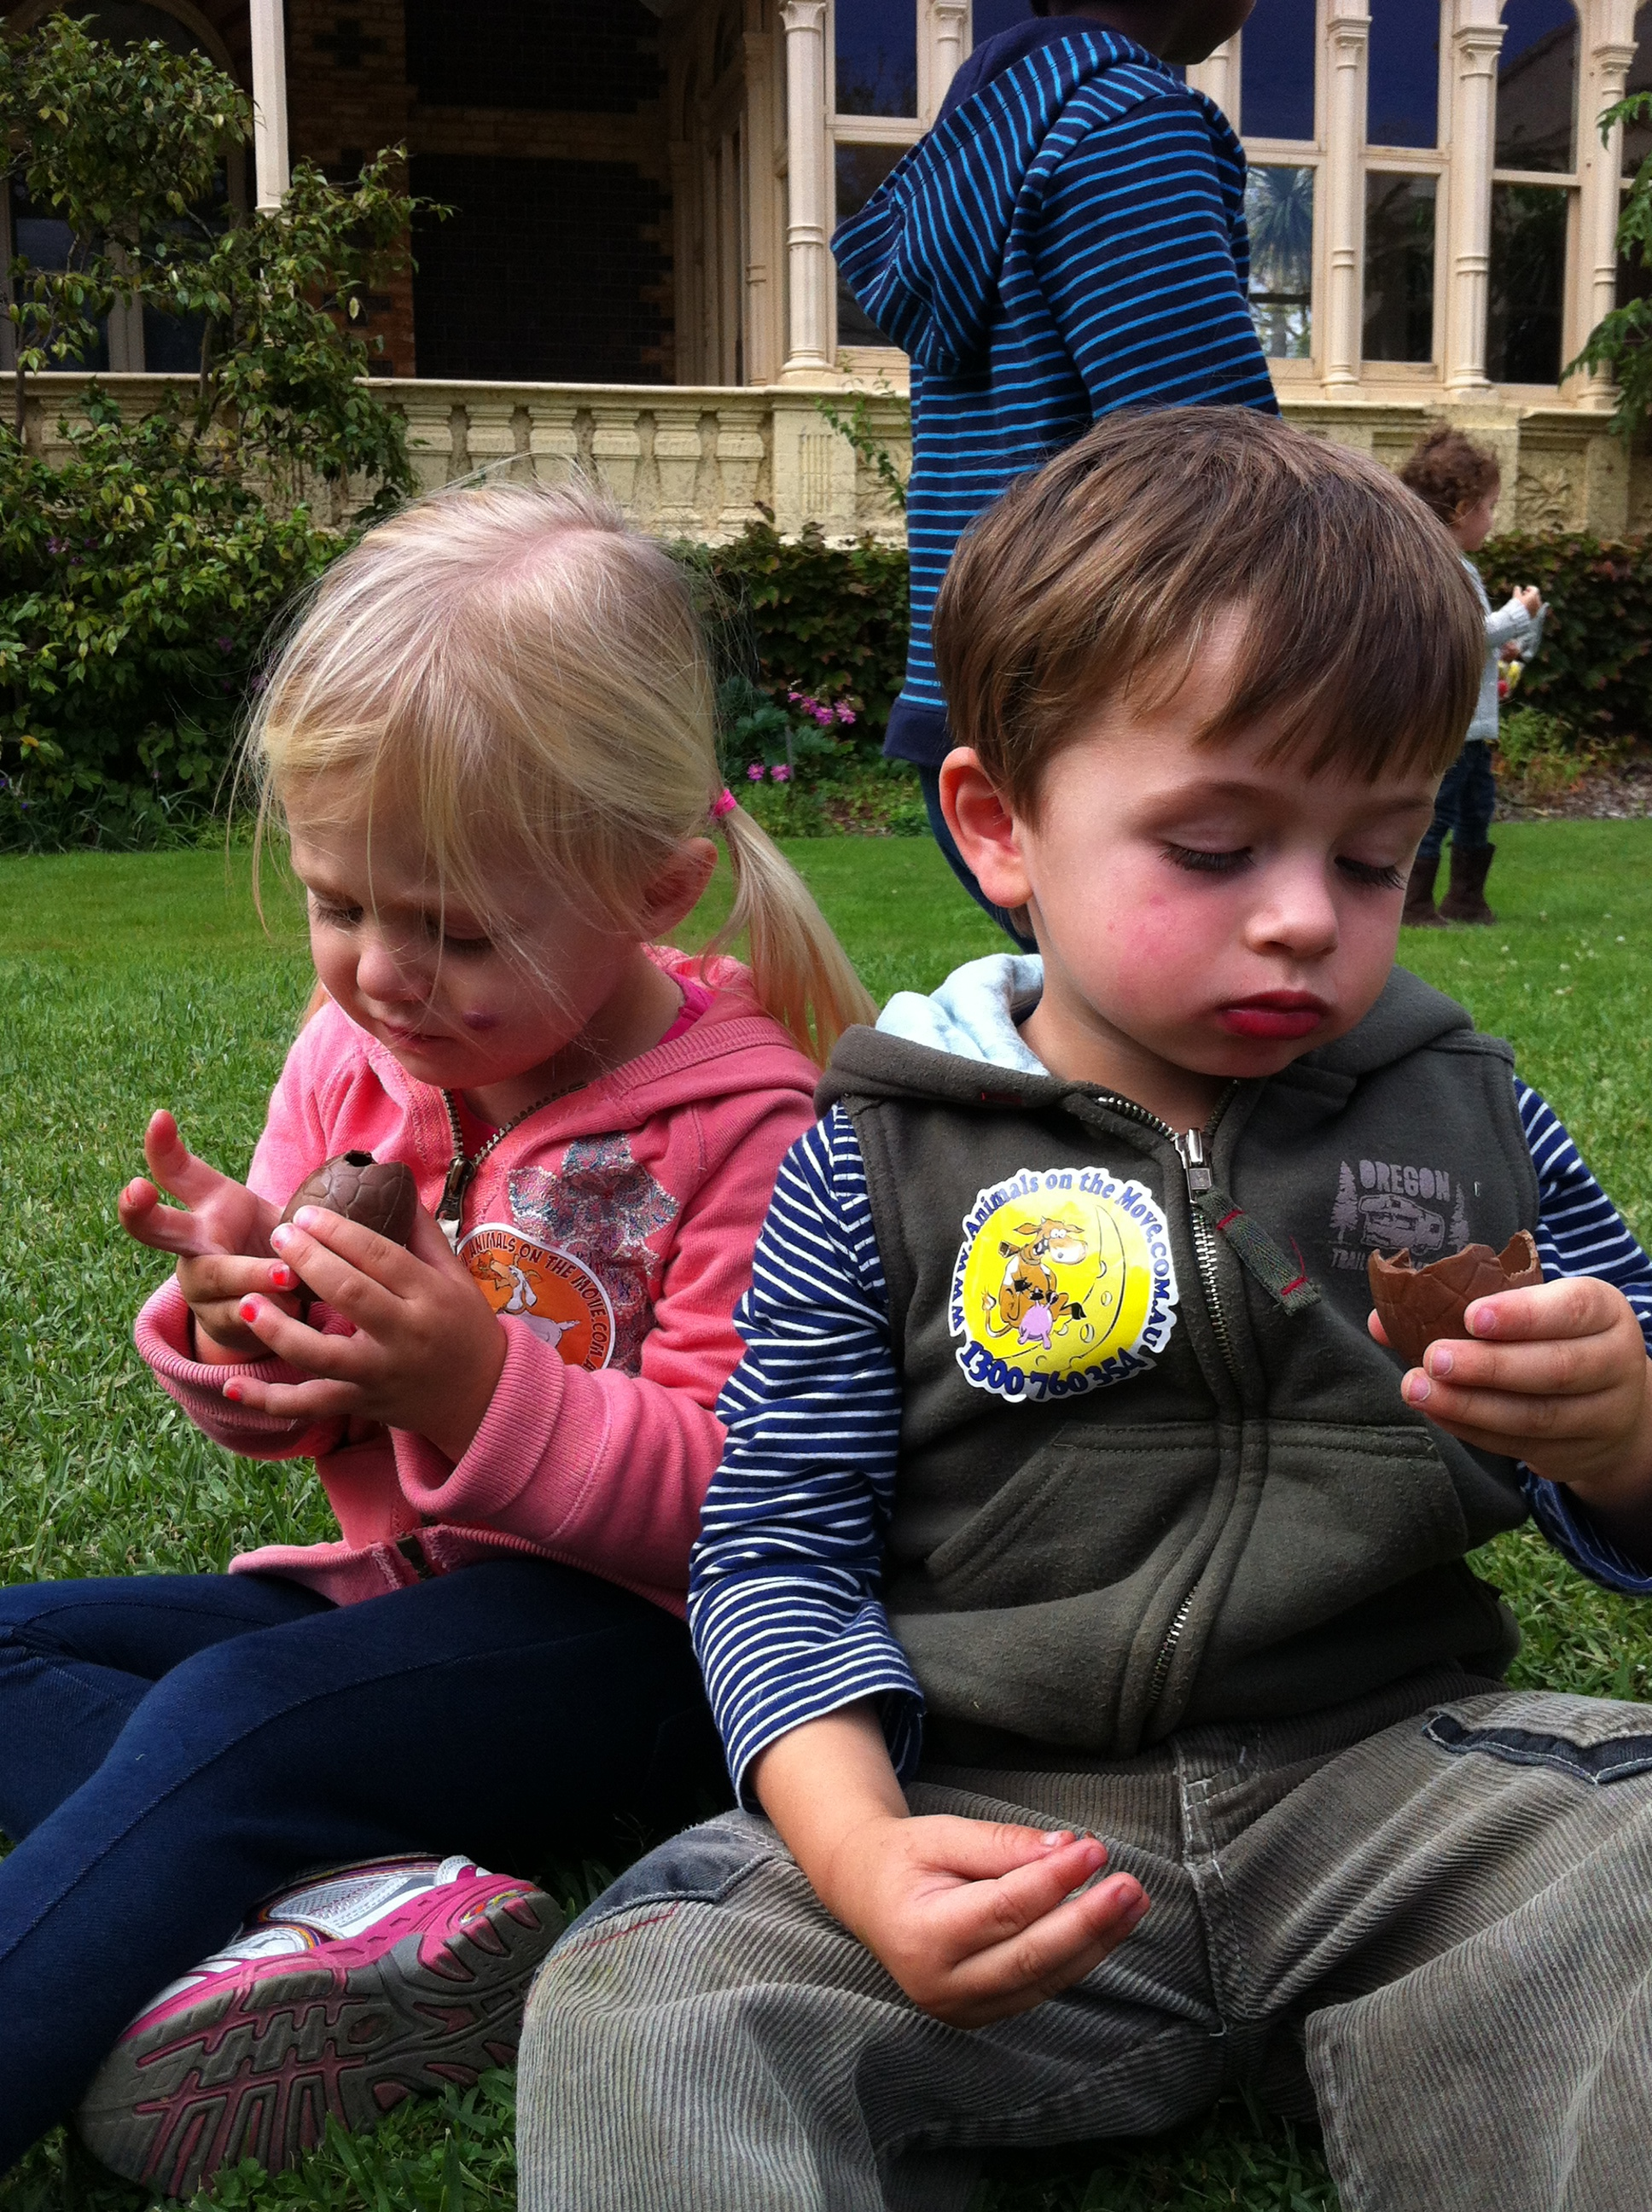 Easter fun day at rippon lea melbourne after all that hard work youll want to sit down and enjoy your spoils negle Images